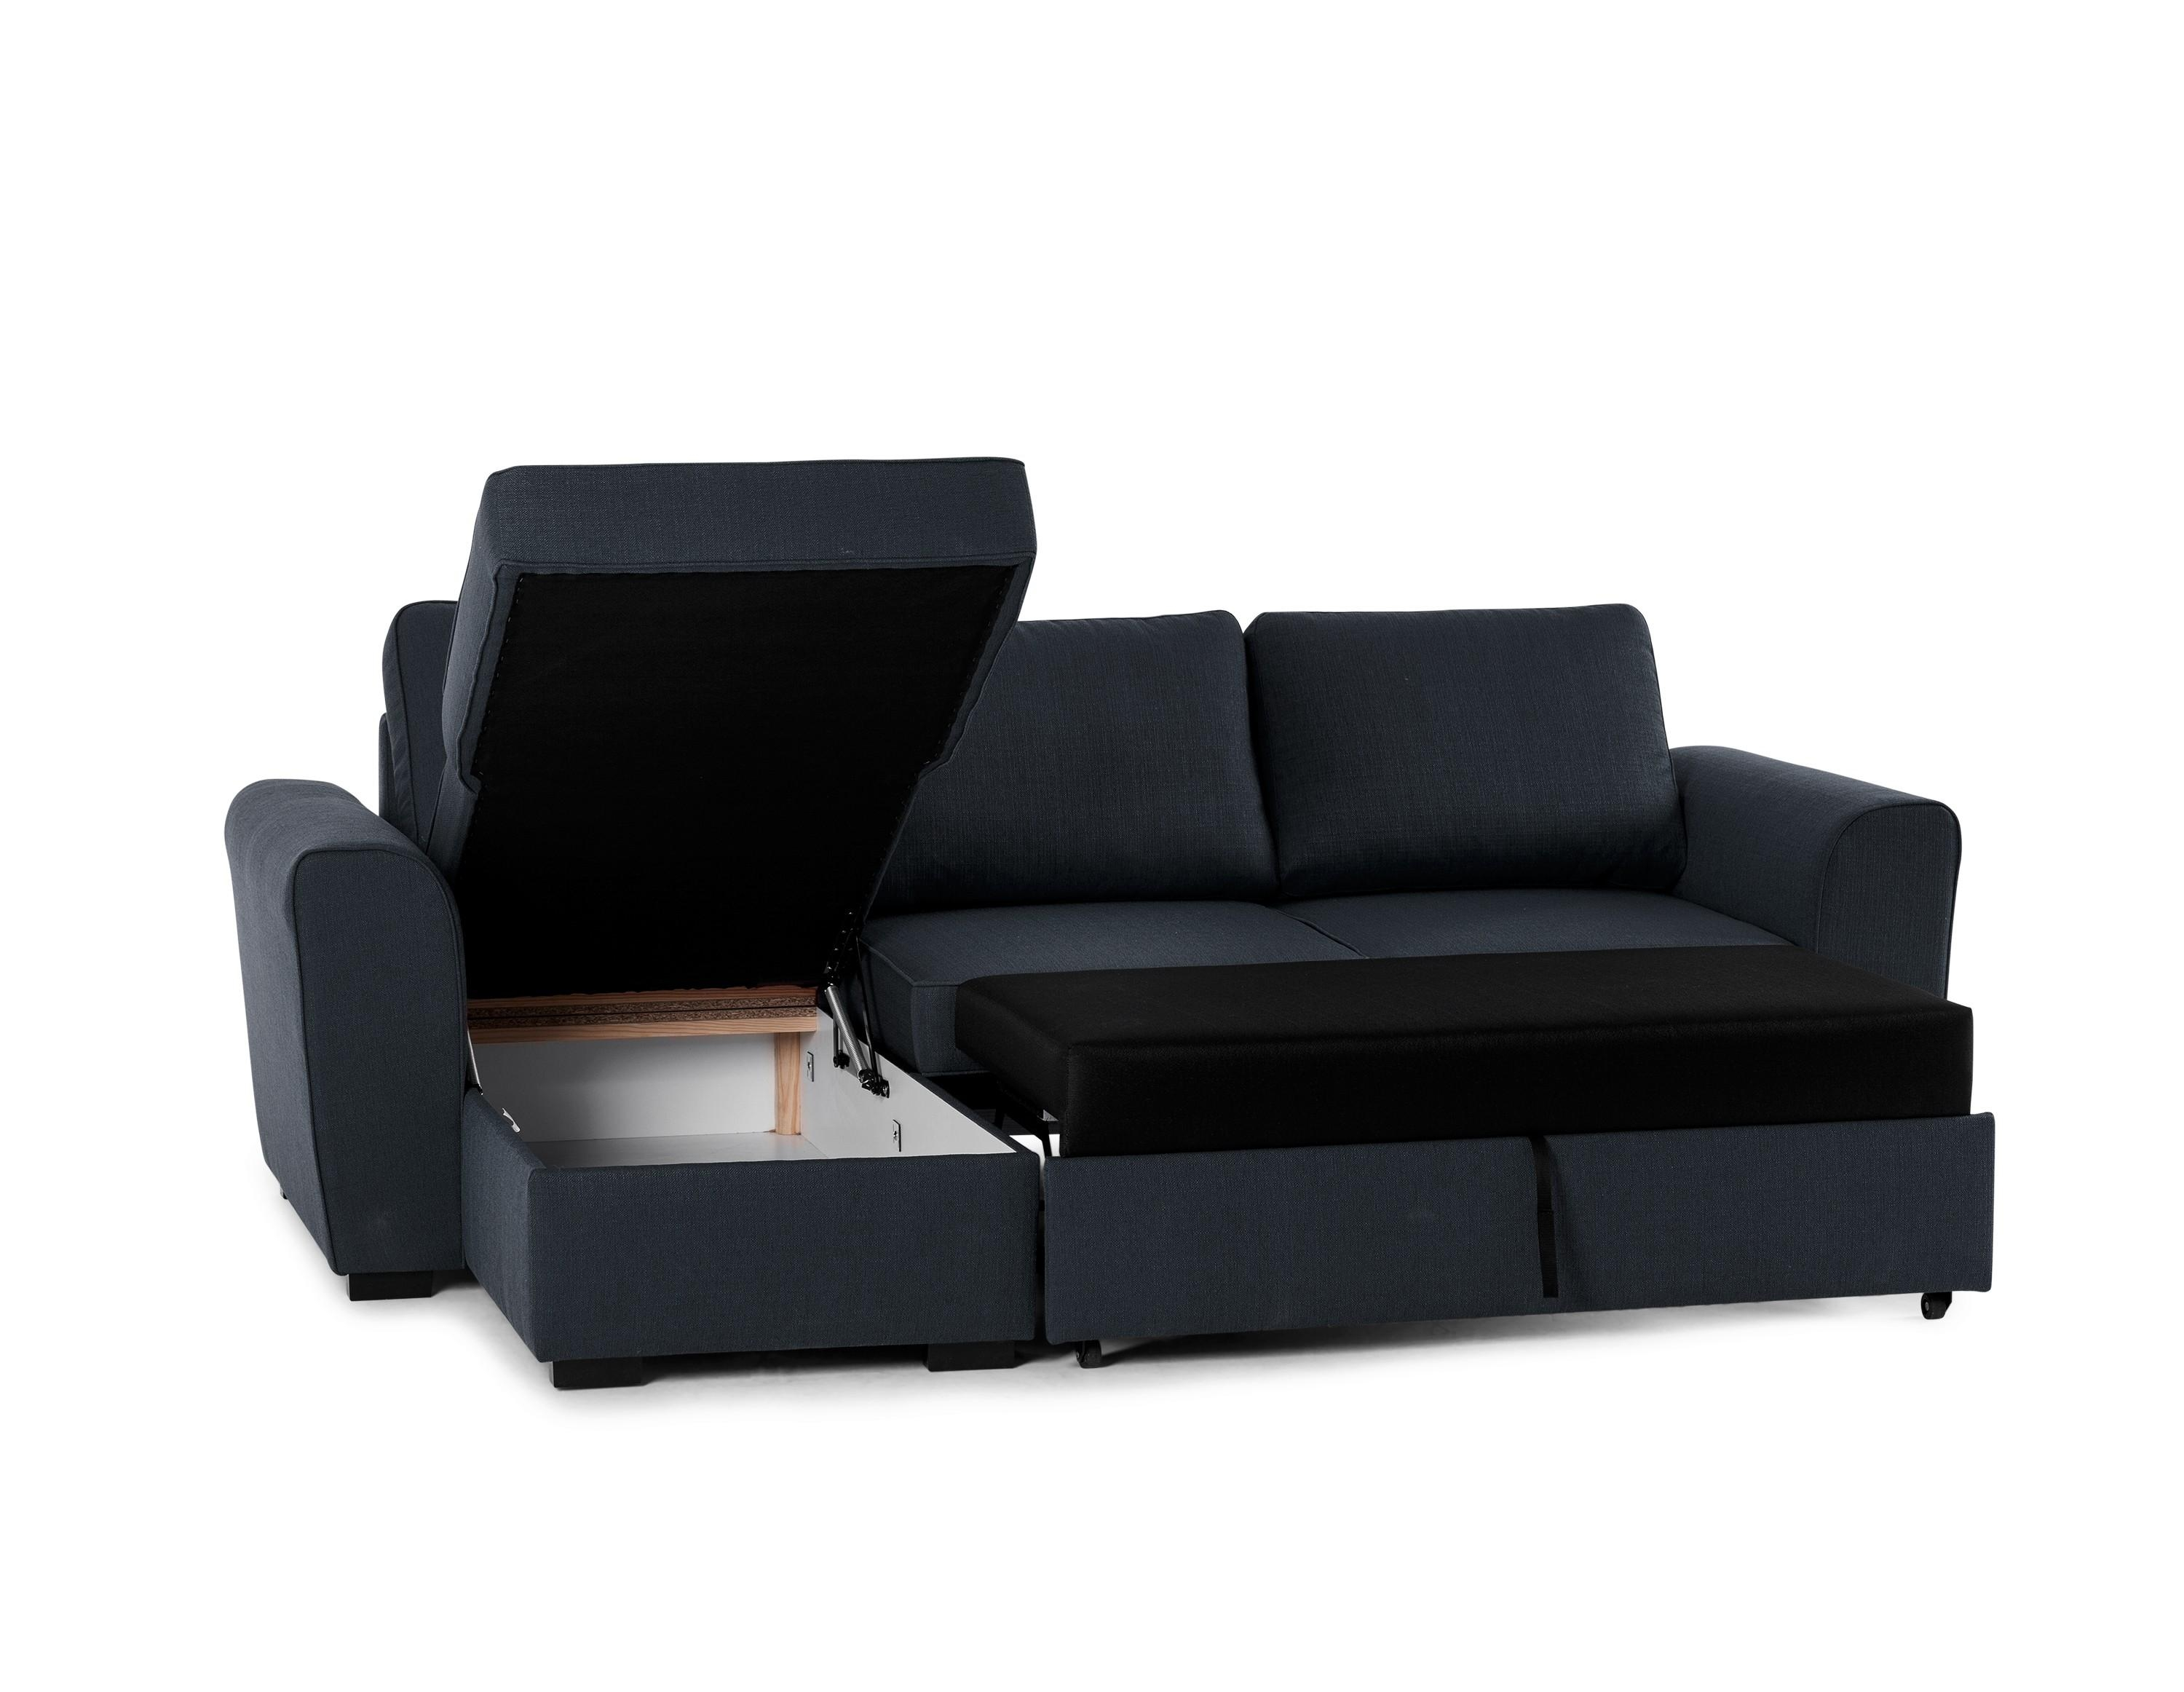 Sofa: Cozy Sears Sofa Bed For Elegant Tufted Sofa Design Ideas With Regard To Sofas With Beds (Image 16 of 22)